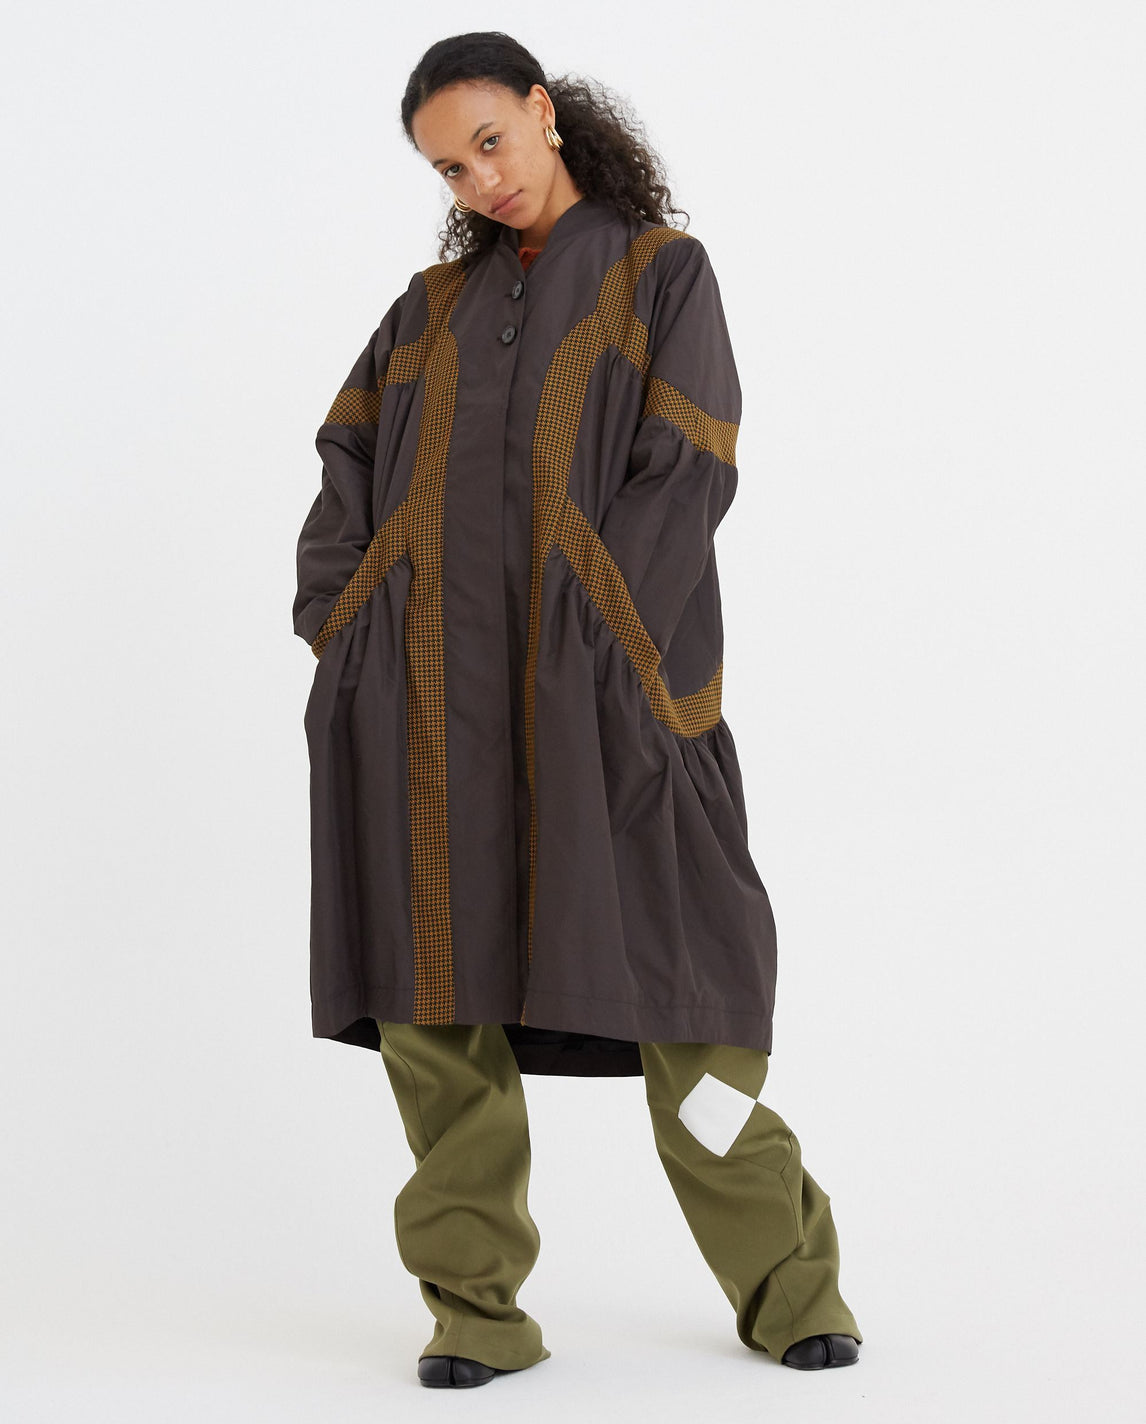 Line Insert Raincoat - Brown WOMENS KIKO KOSTADINOV